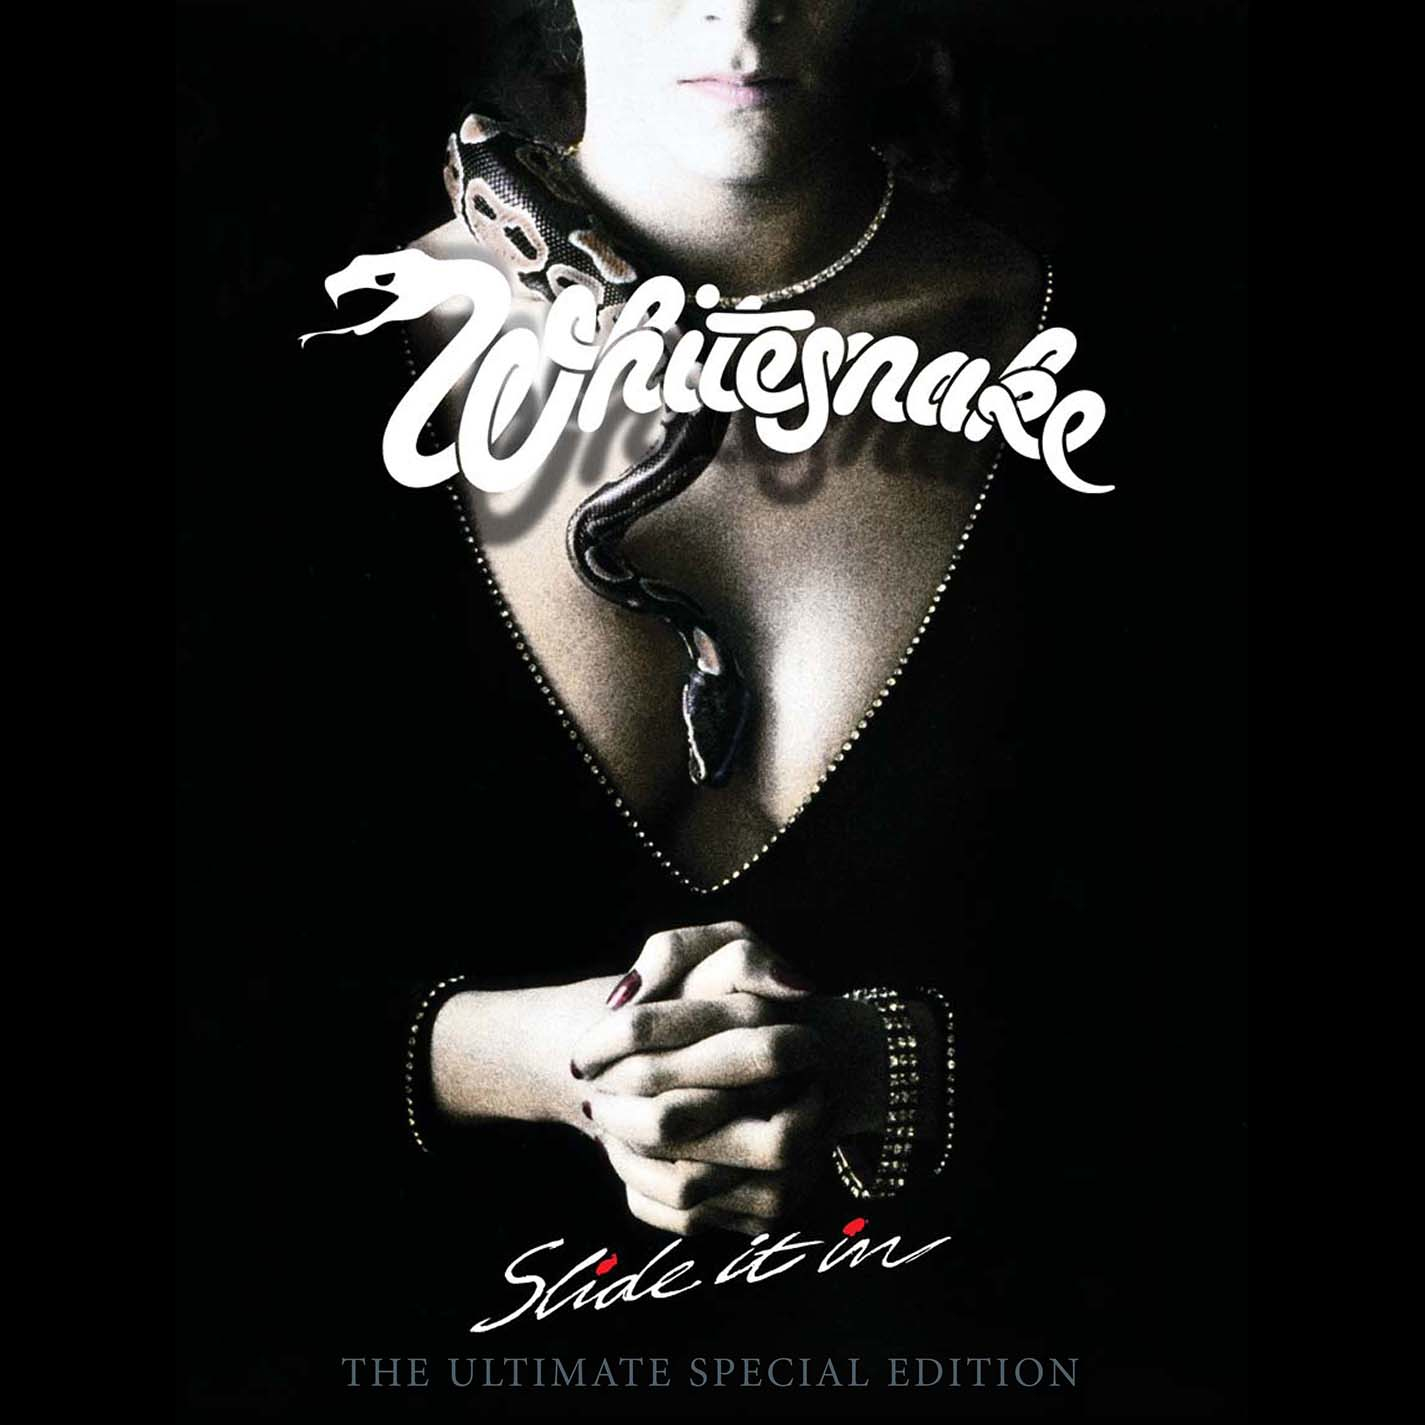 SLIDE IT IN: THE ULTIMATE EDITION (W / DVD) (RMS-WHITESNAKE